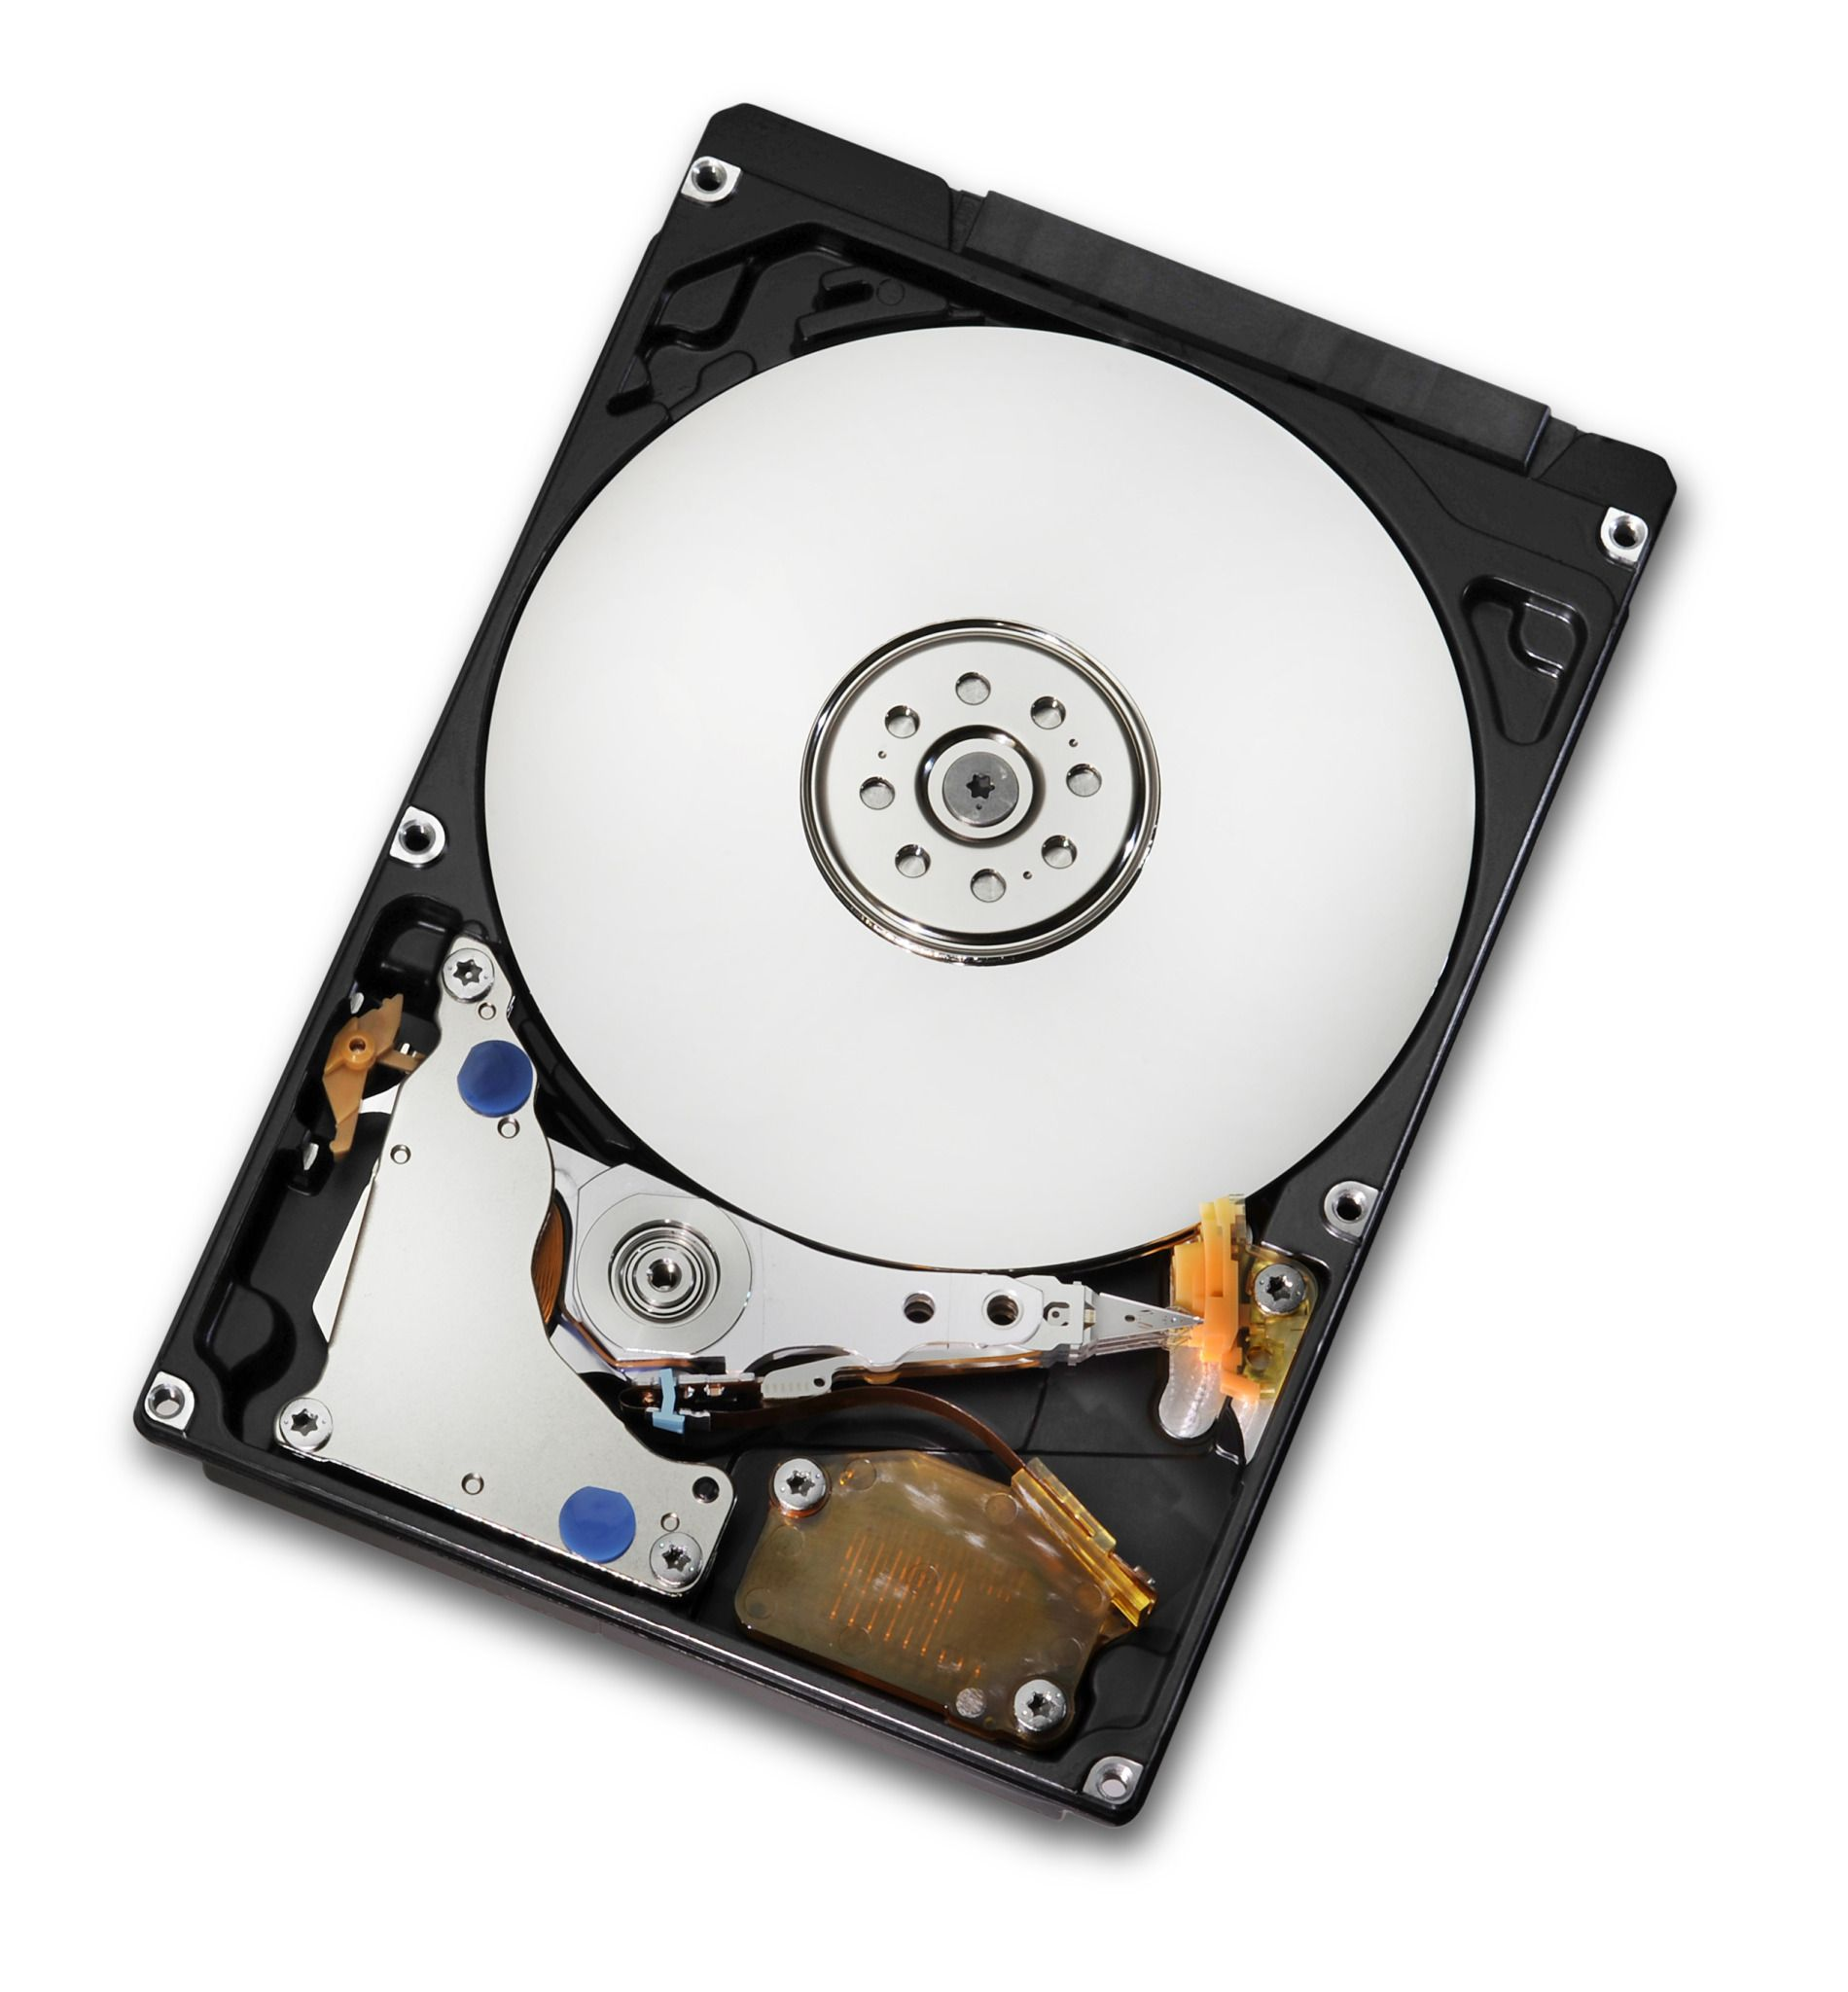 Travelstar®™ 7K1000 1TB 7200RPM Mobile Hard Disk Drive $89.97